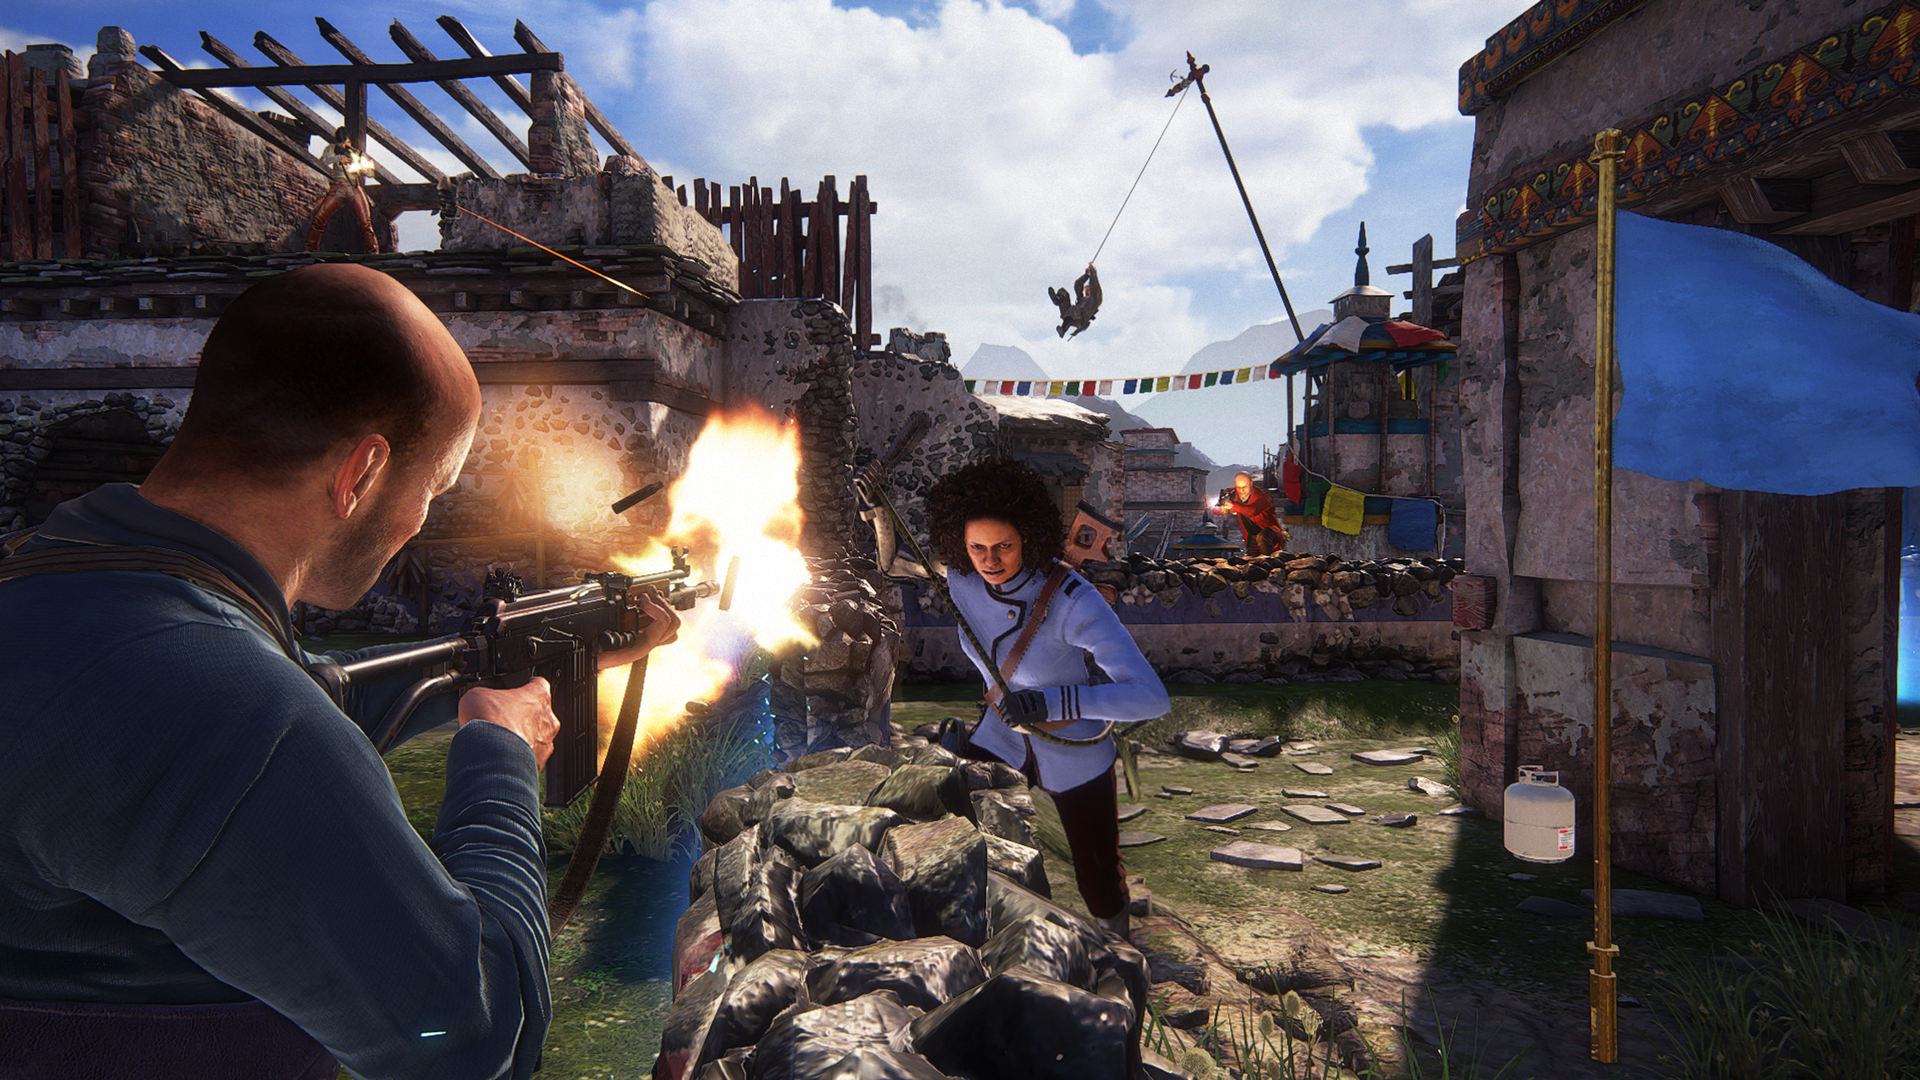 Uncharted 4 Multiplayer: Double XP, 50% Off Sale, and Classic Mode This Weekend